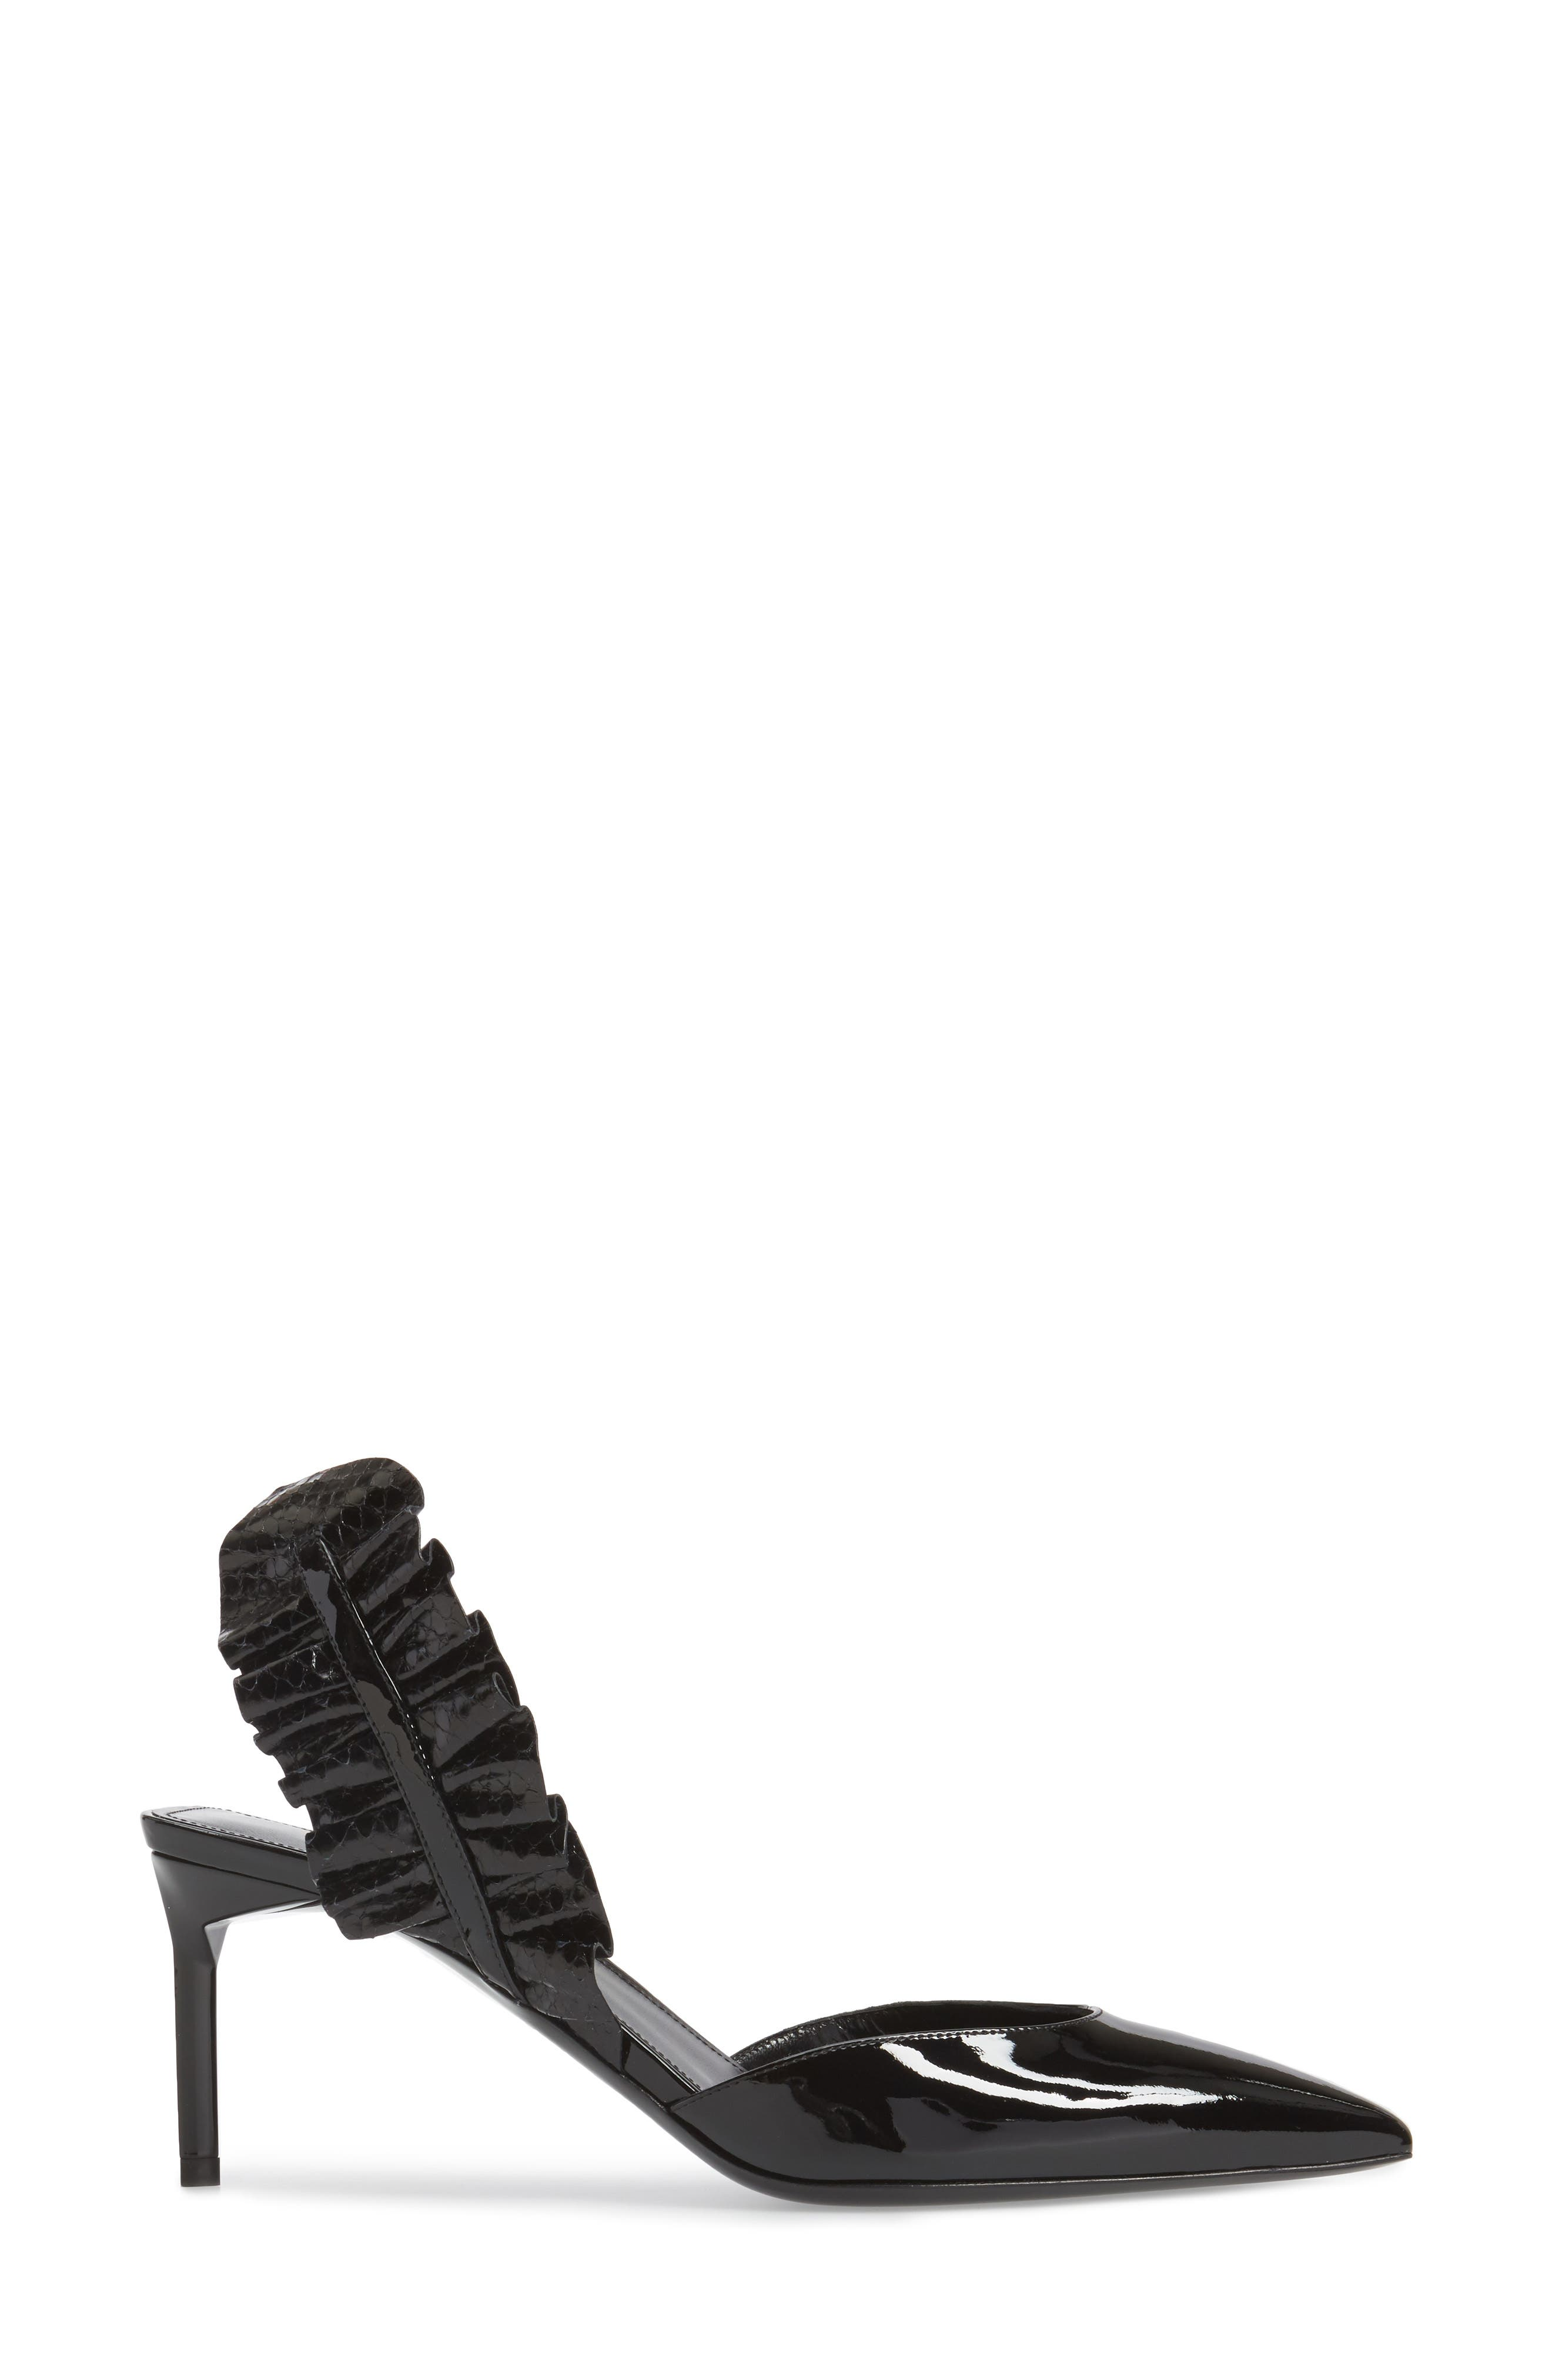 Edie Genuine Snakeskin Ruffle Pump,                             Alternate thumbnail 3, color,